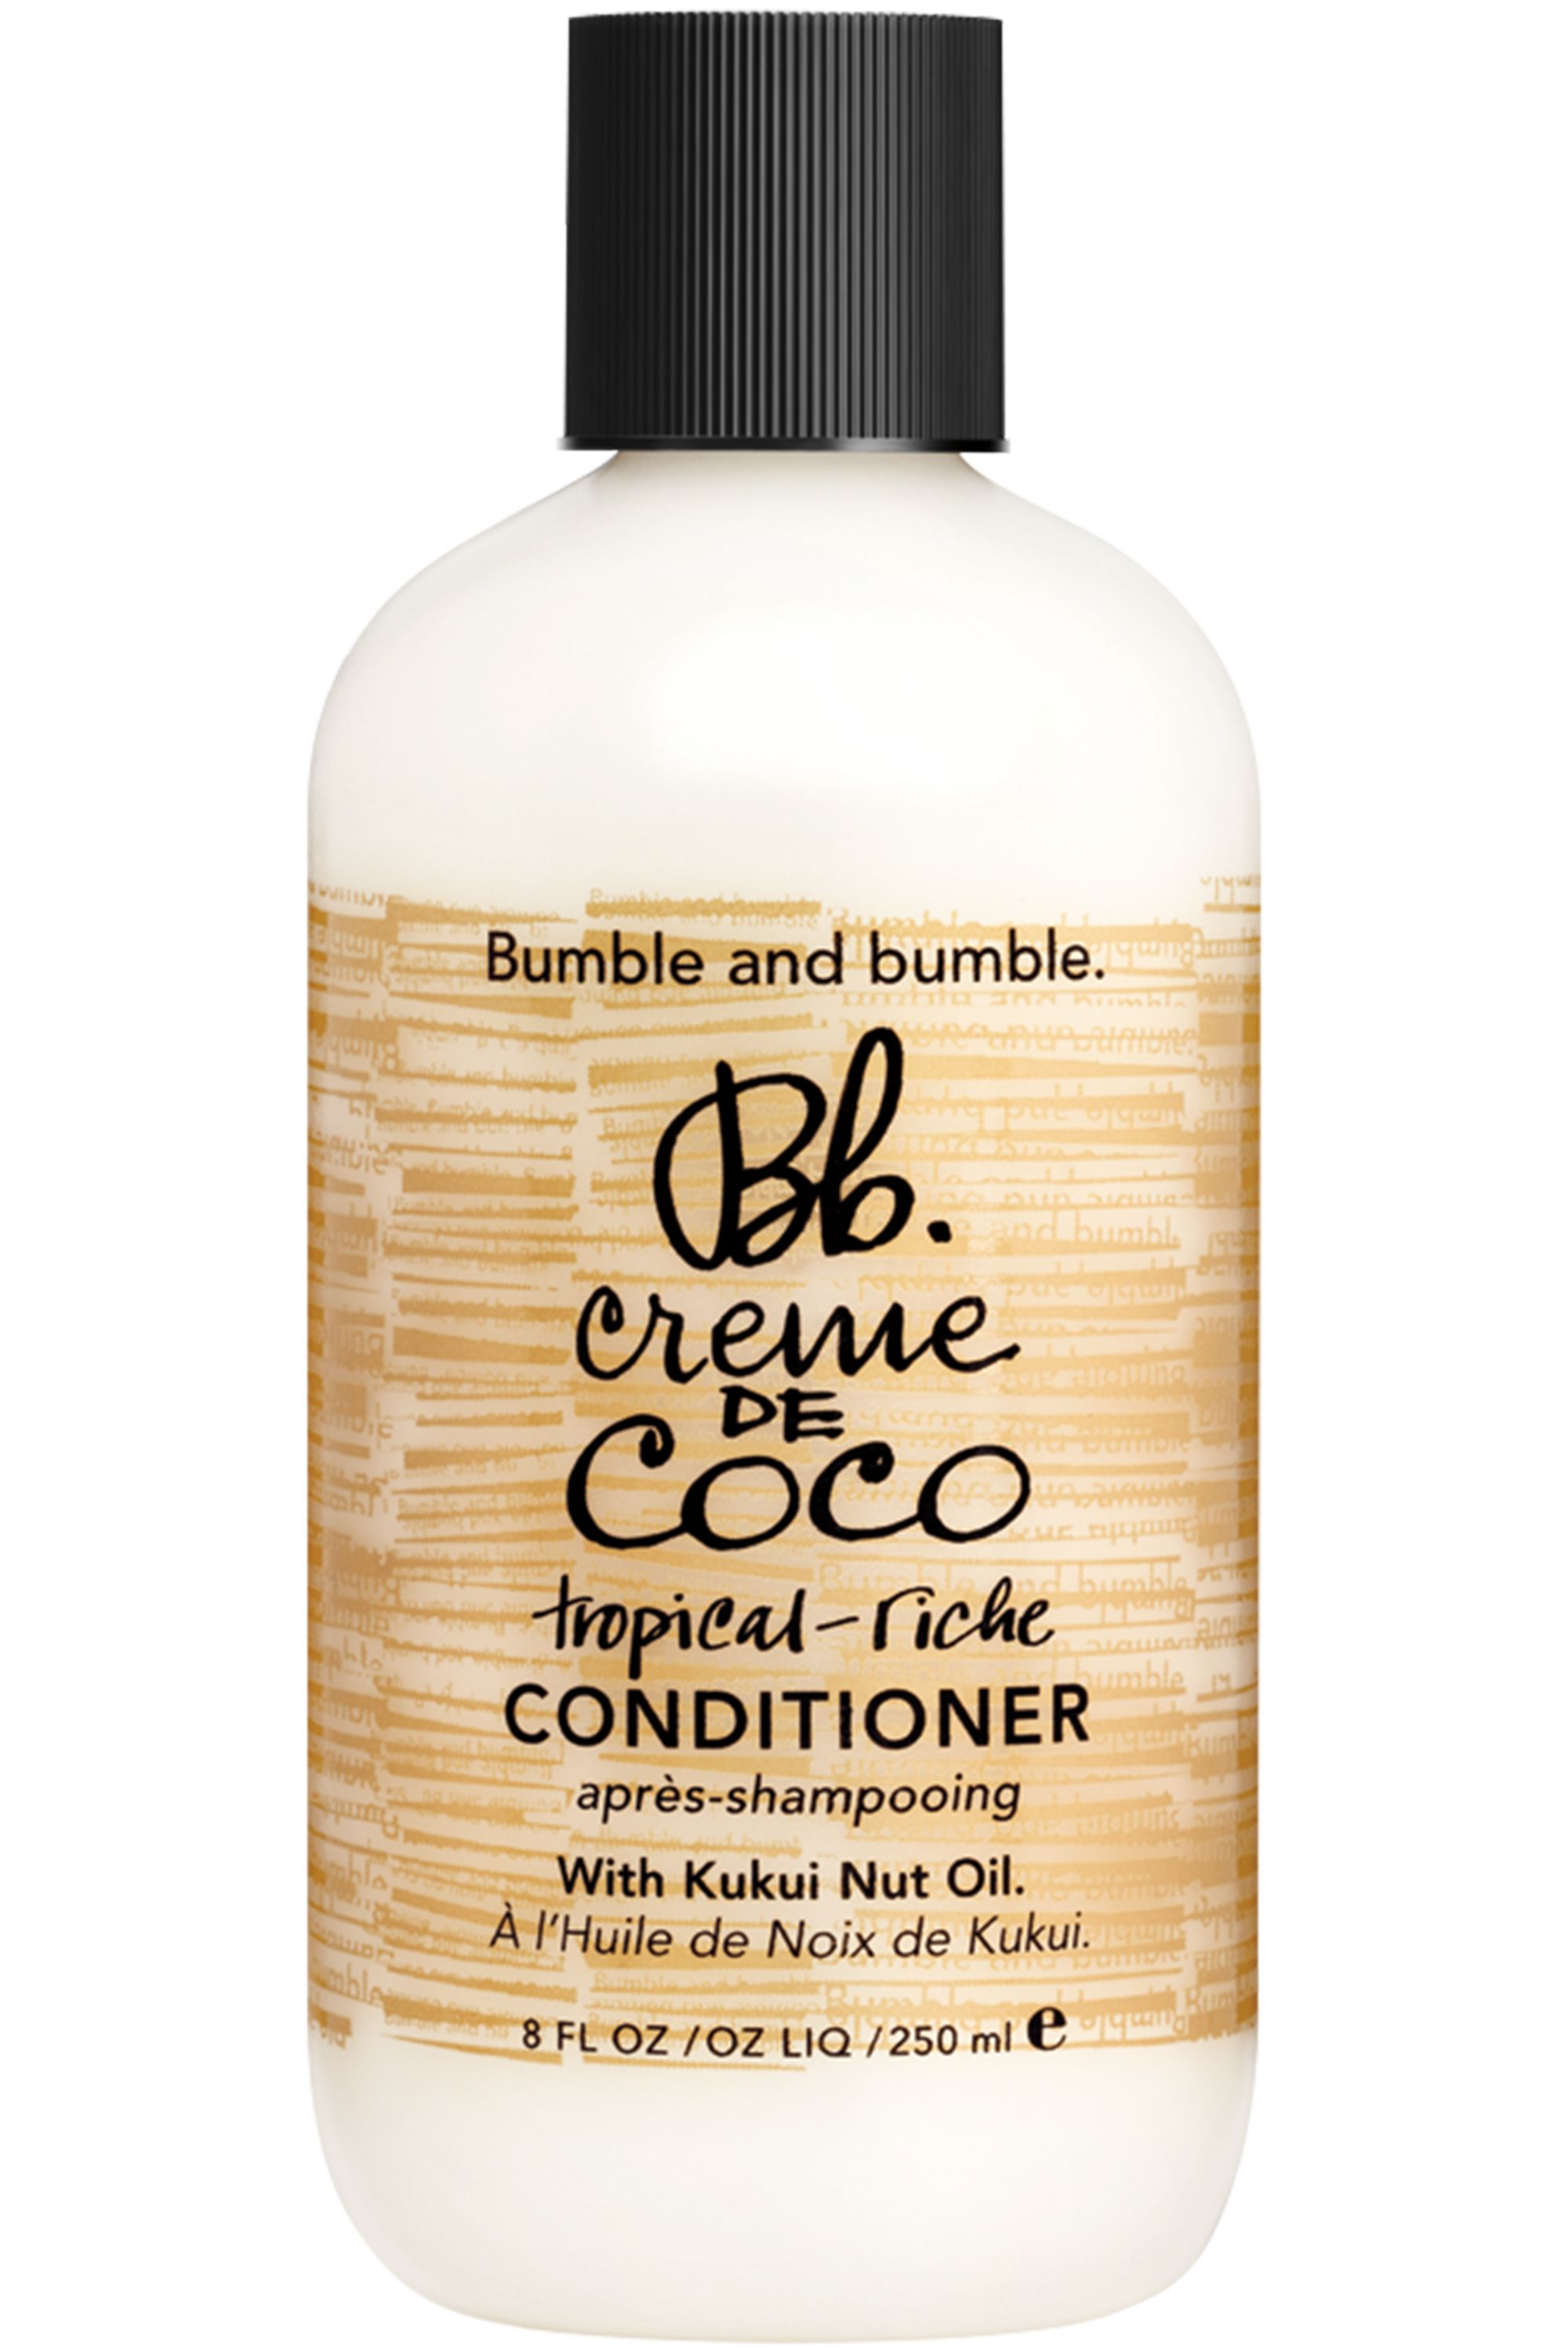 Blissim : Bumble and bumble. - Après-shampoing crème de coco - Après-shampoing crème de coco